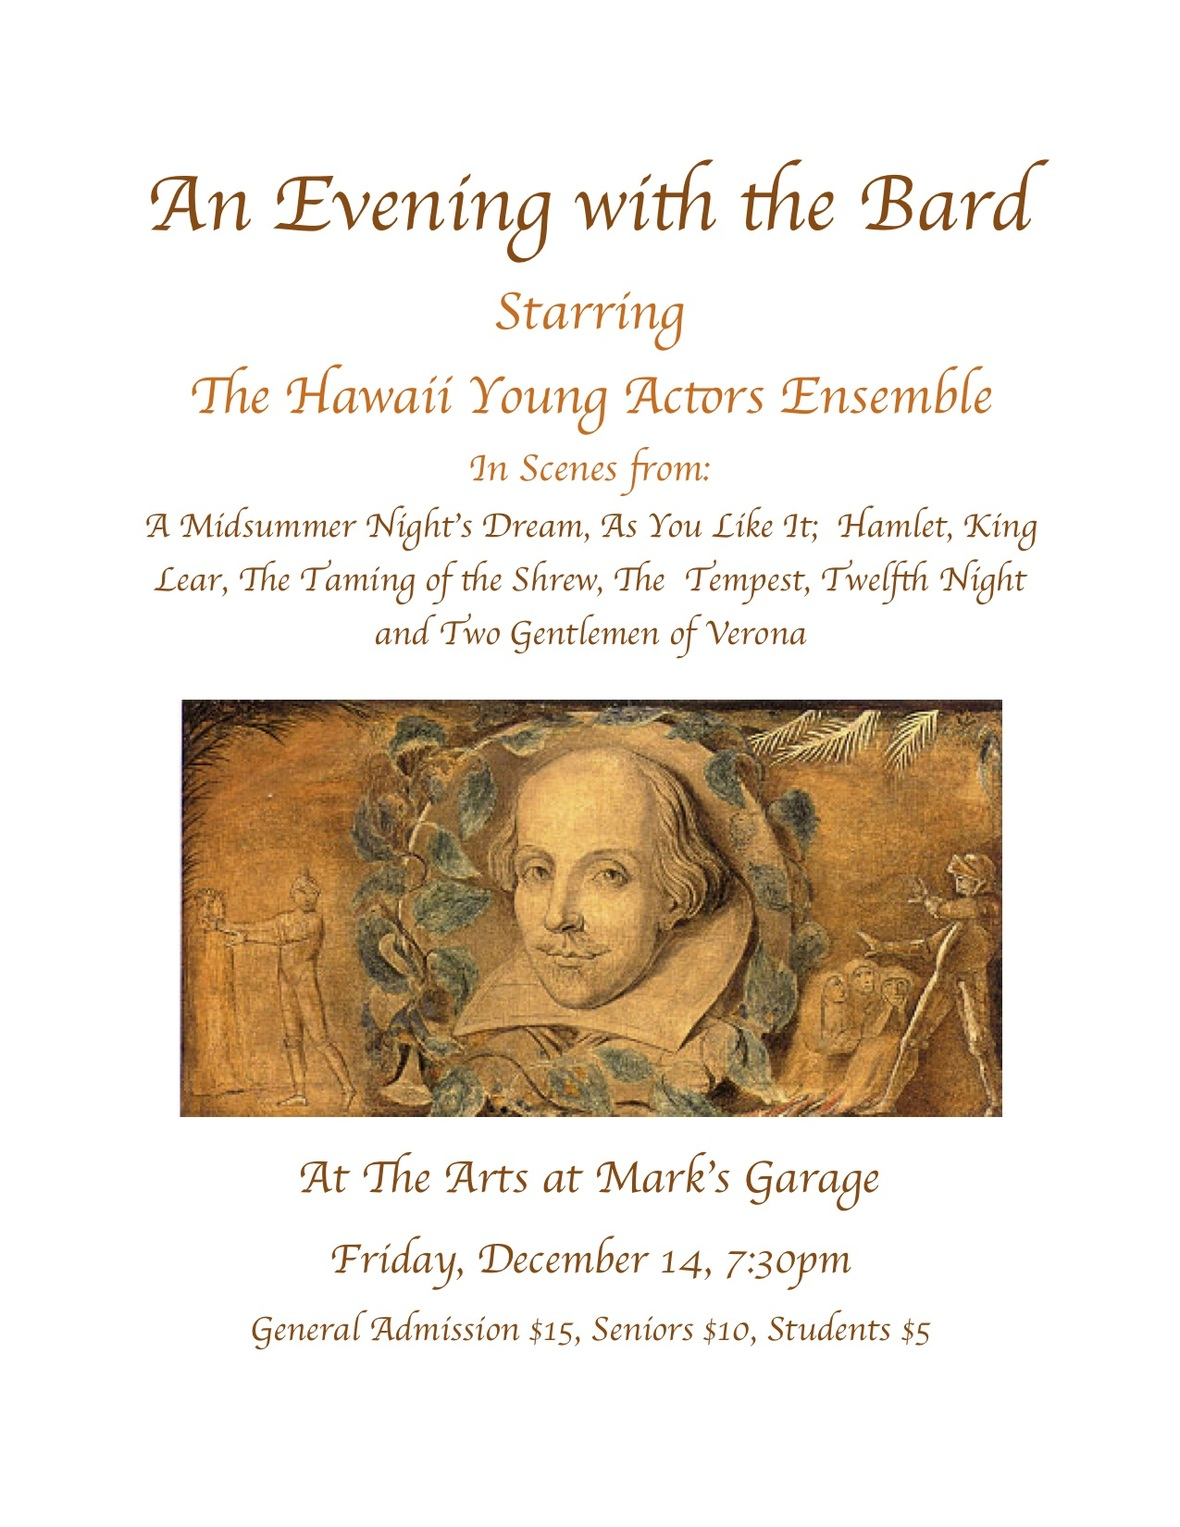 Evening_with_the_Bard_2018_Hawaii_Young_Actors_Ensemble_Flyer_10.25.18.jpg